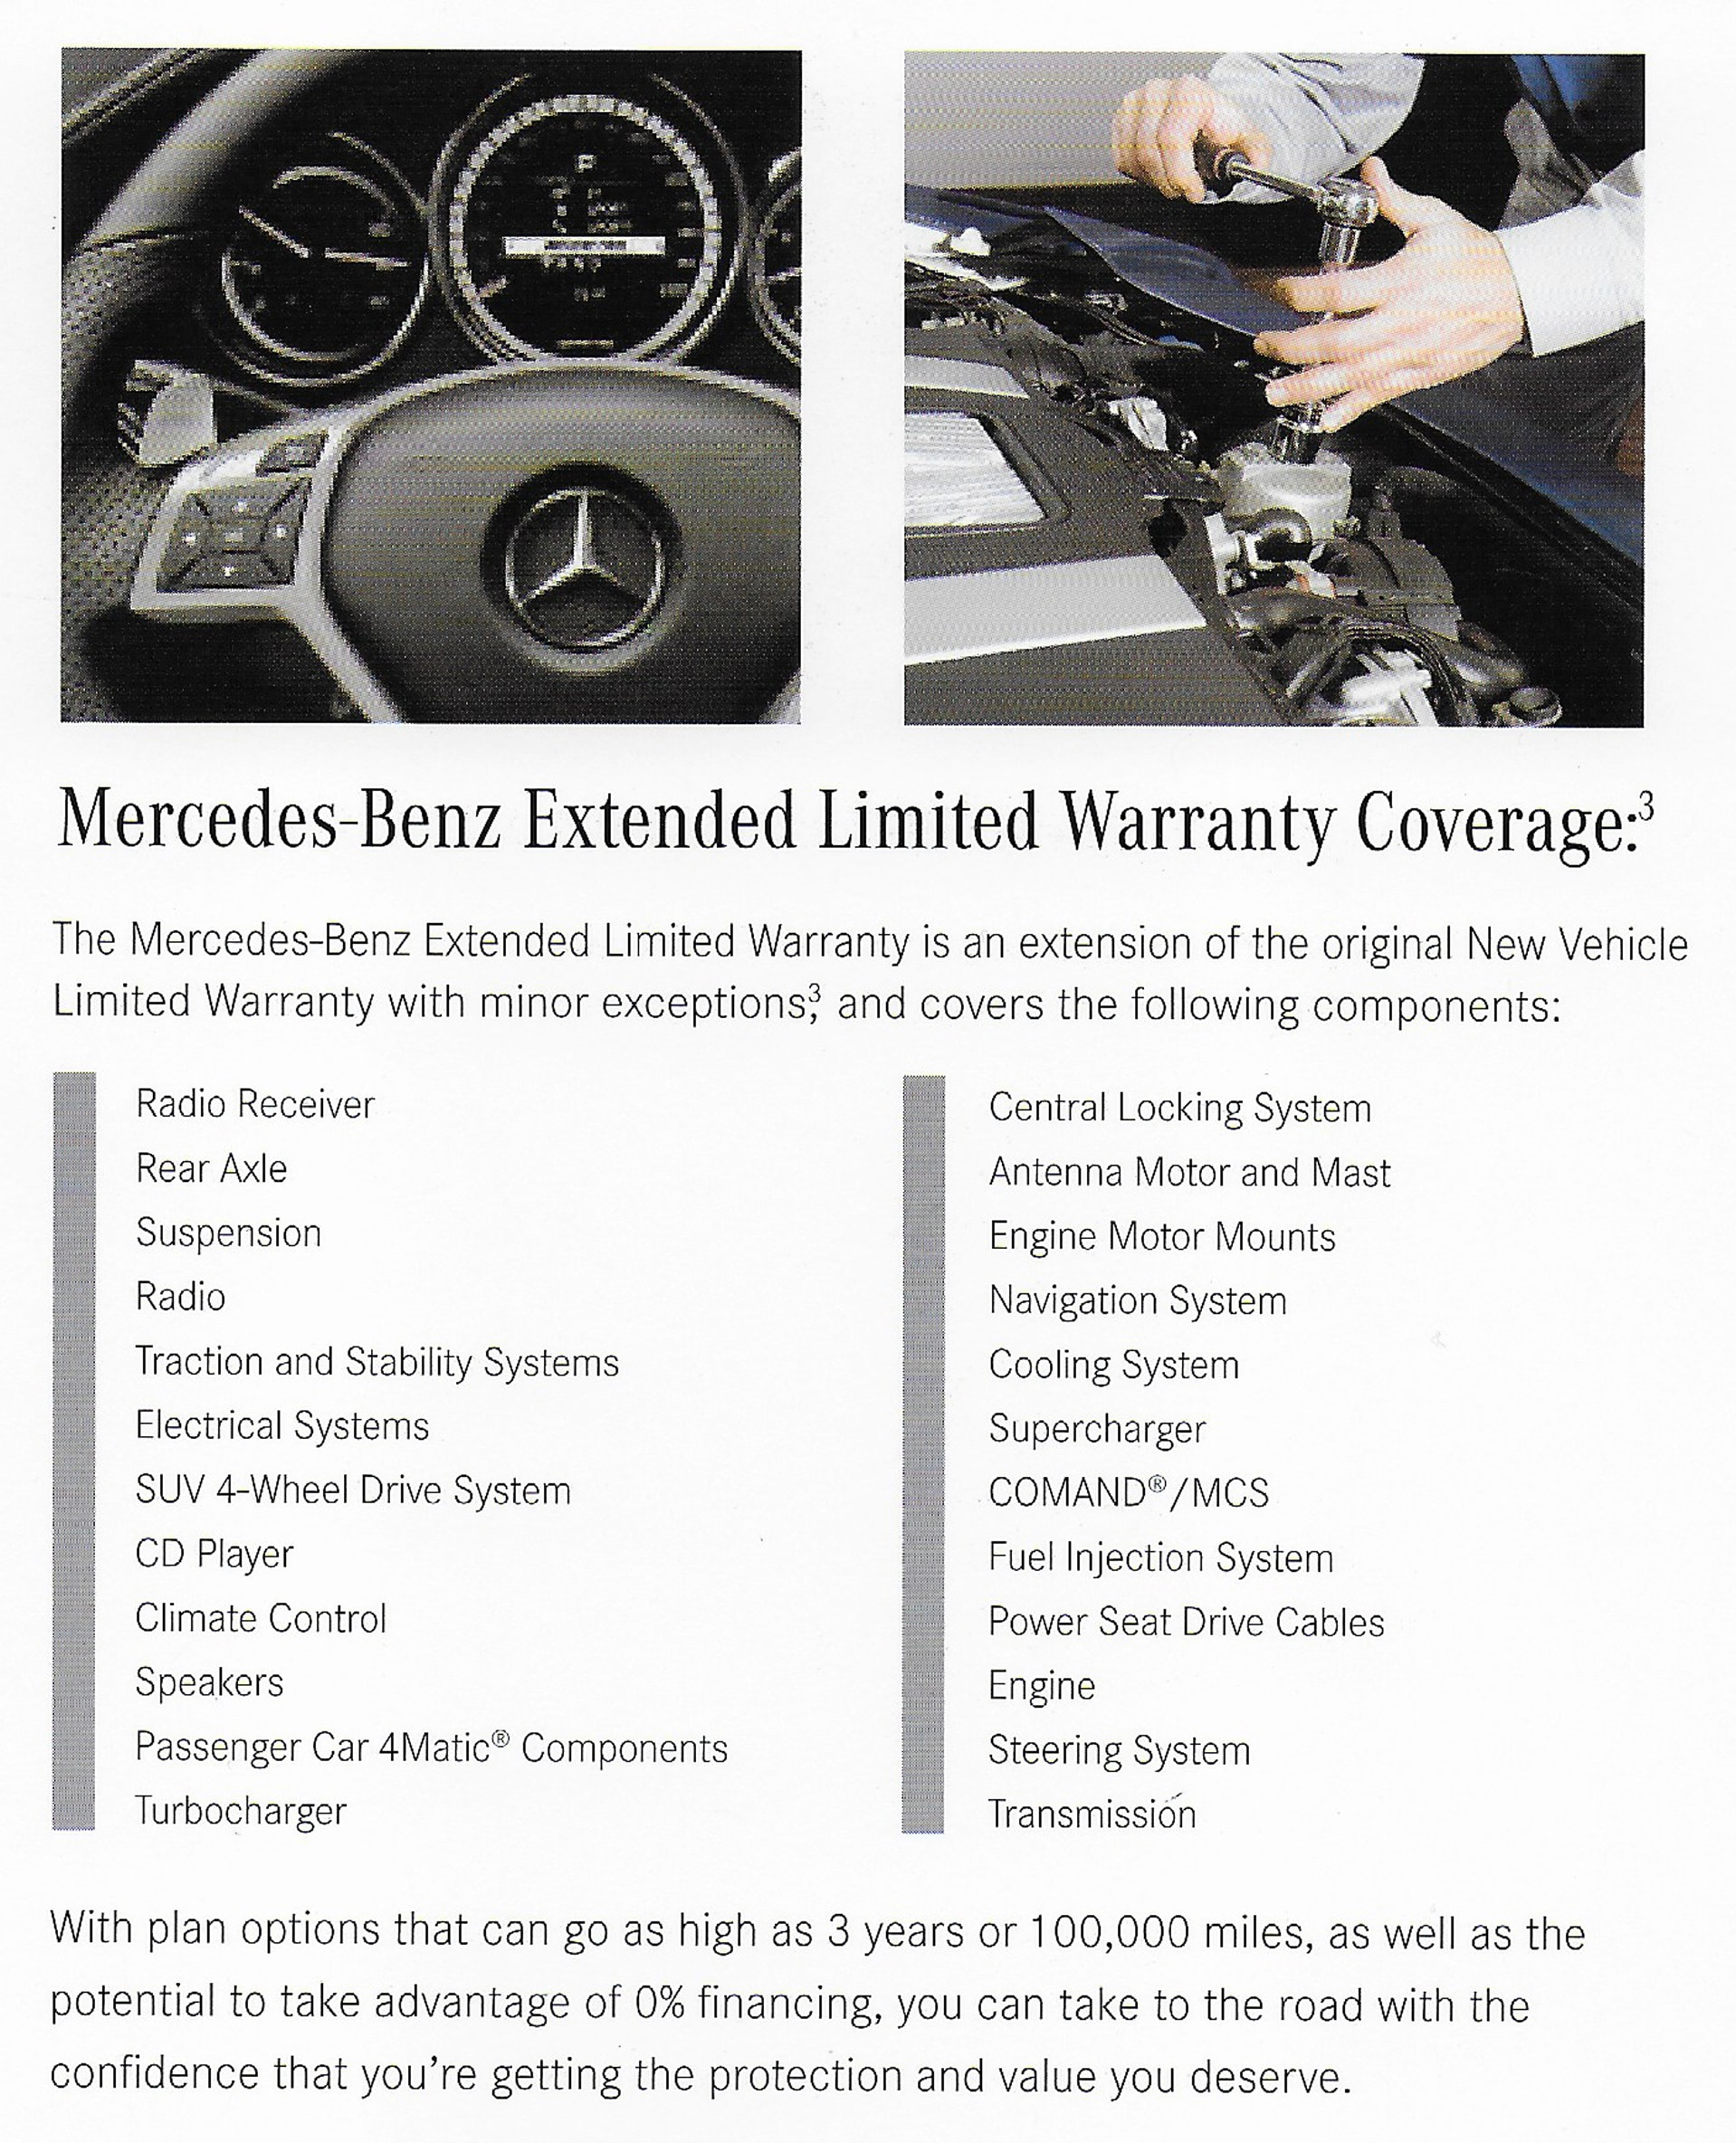 To Purchase Or Learn More, Please Visit An Authorized Mercedes Benz  Dealership.